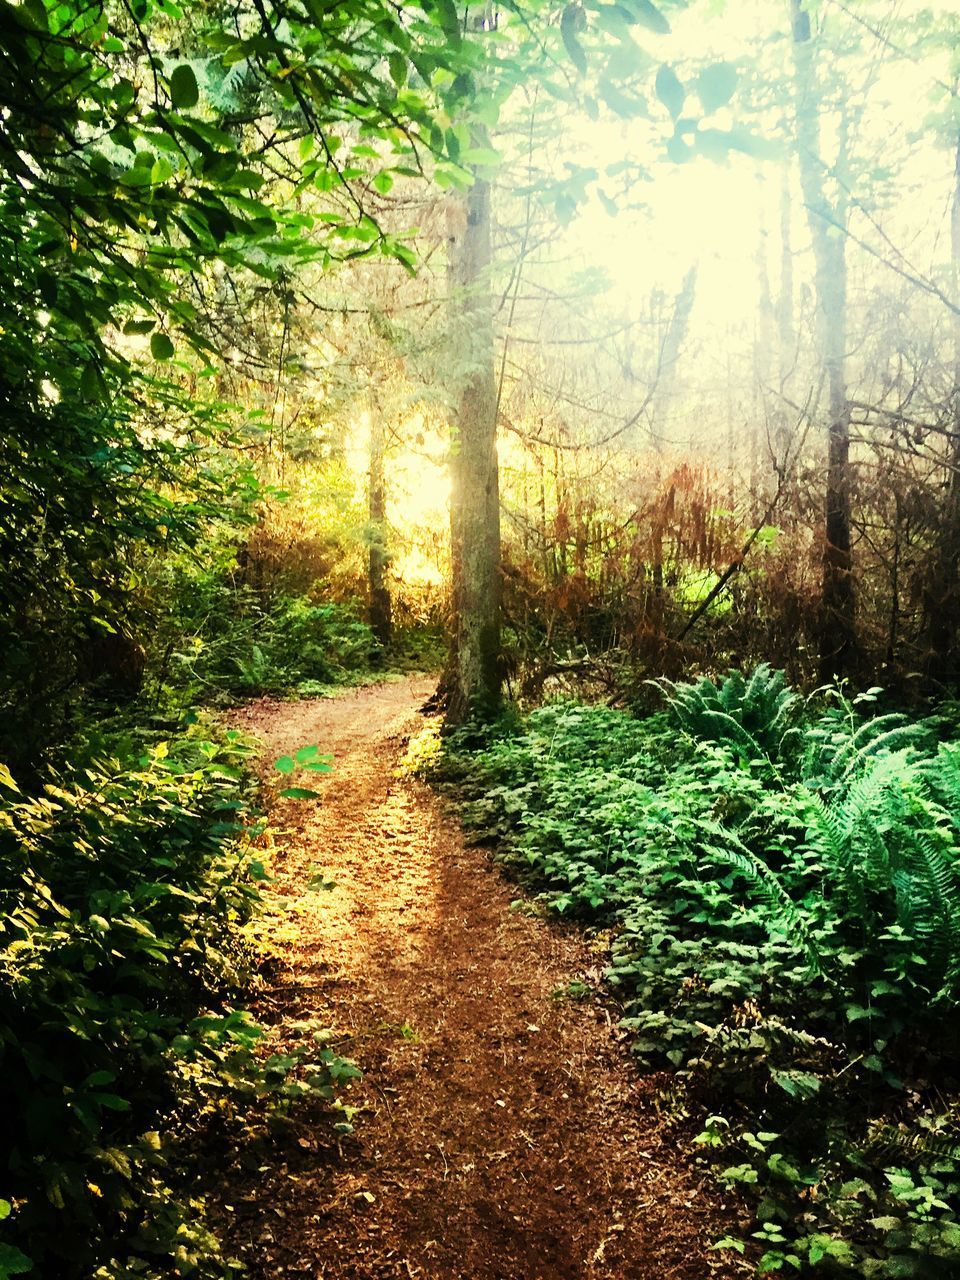 plant, forest, tree, land, tranquility, direction, footpath, the way forward, nature, beauty in nature, growth, tranquil scene, no people, green color, day, sunlight, non-urban scene, scenics - nature, woodland, outdoors, trail